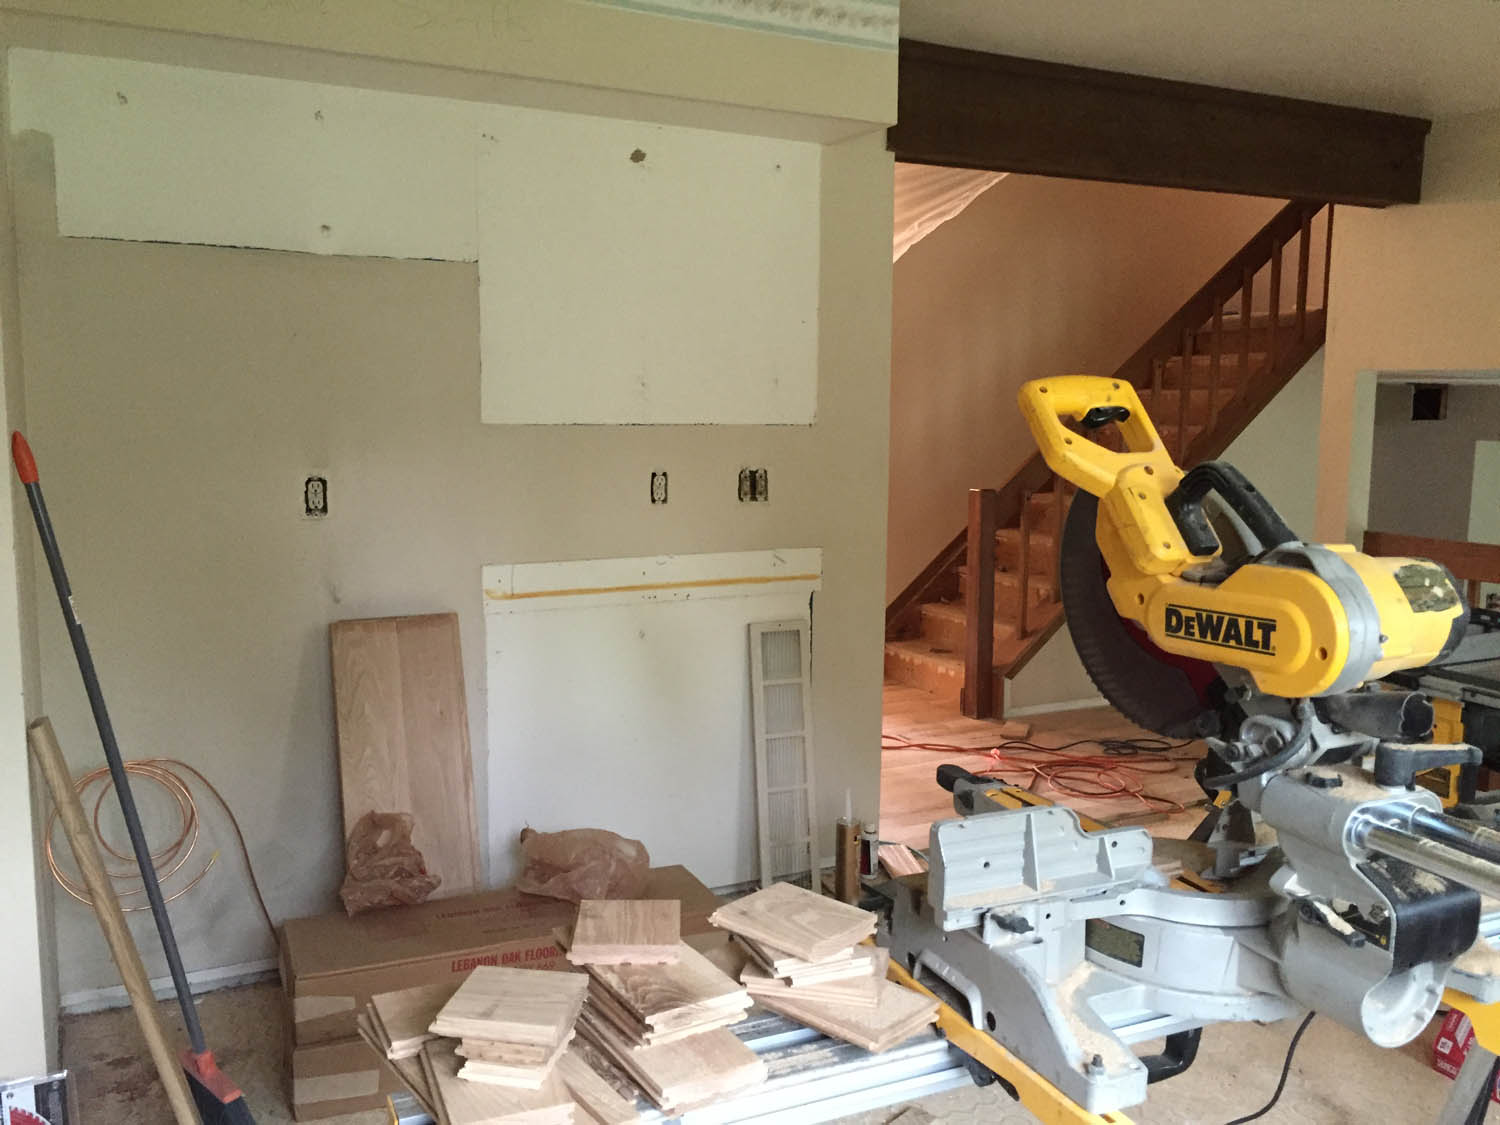 power tools in kitchen during remodel